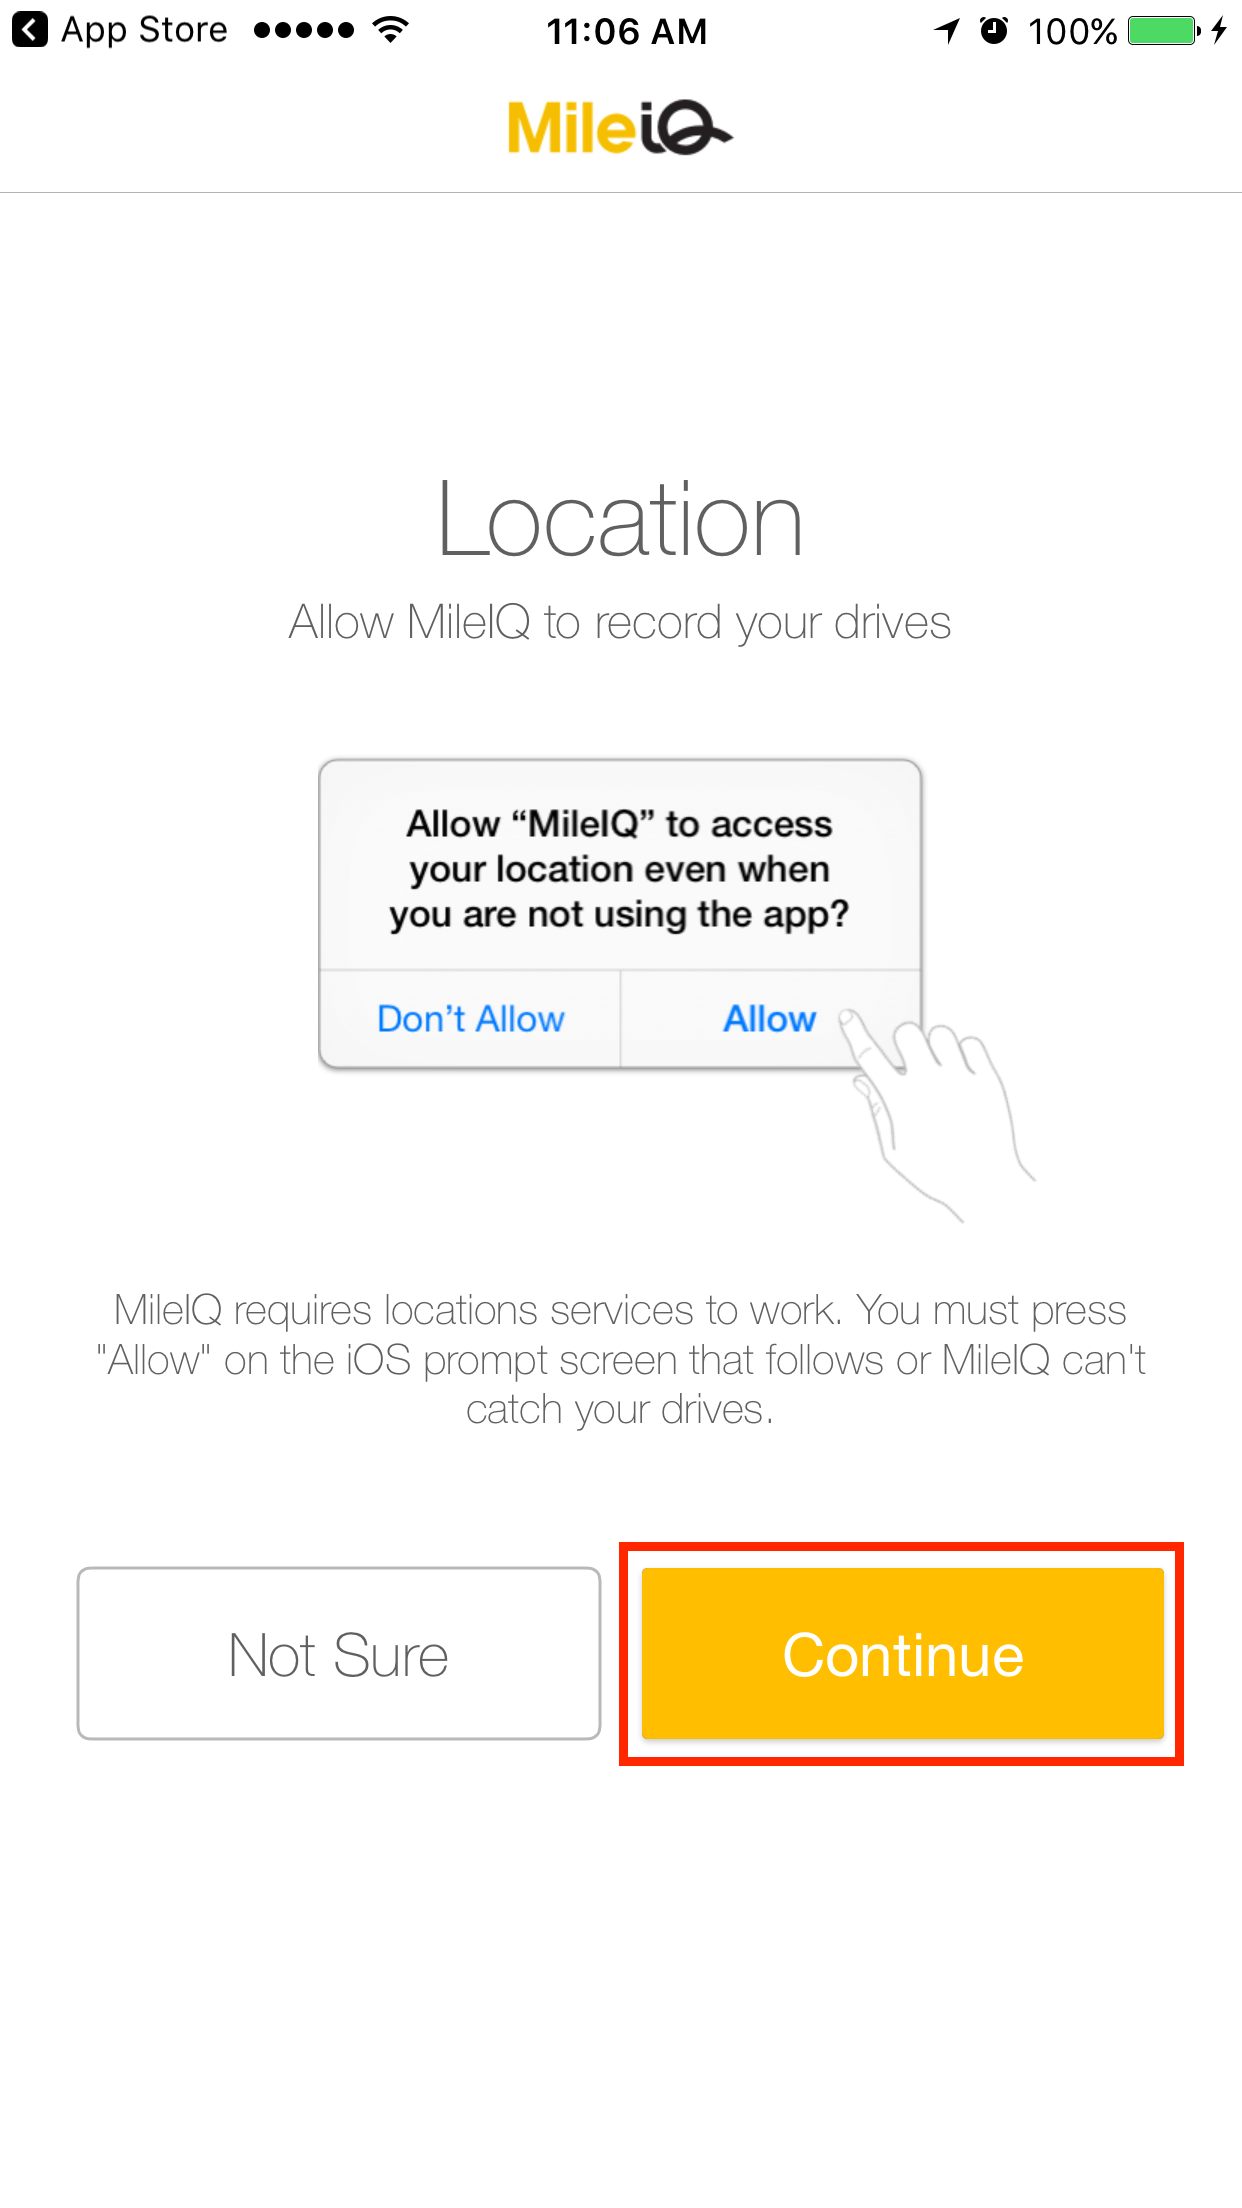 This image shows the locations services confirmation screen in the mobile app.